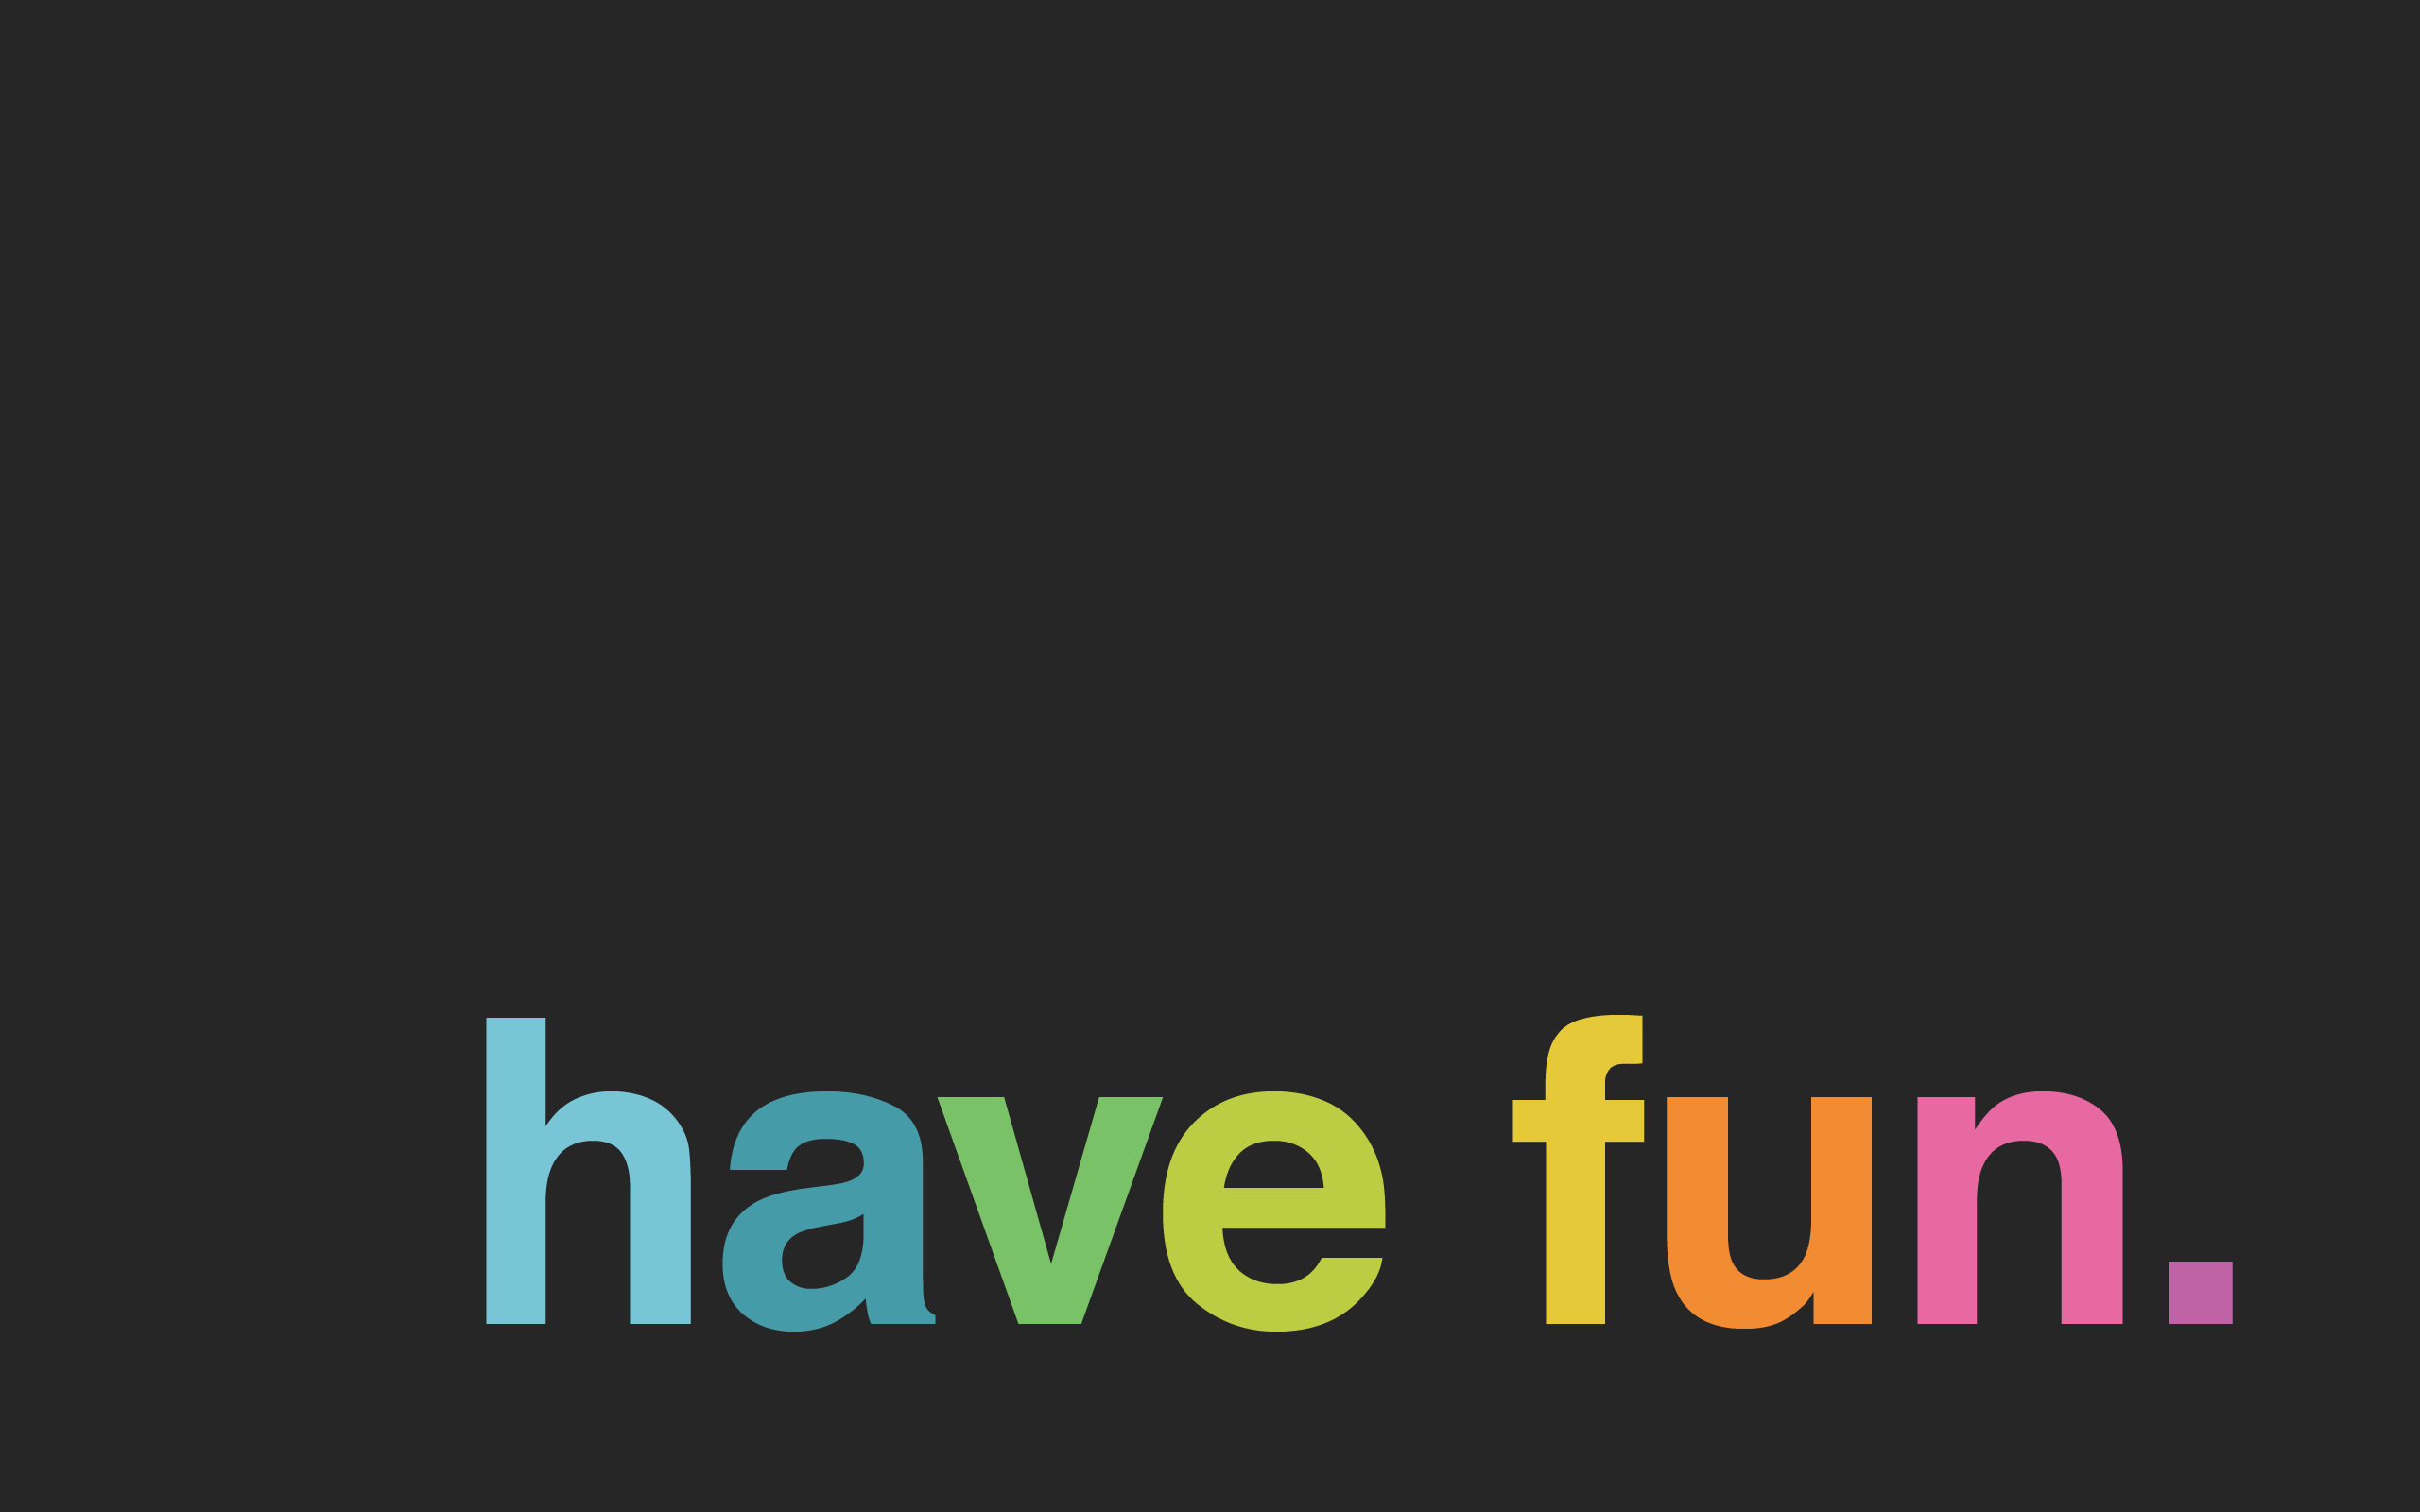 How Important Is Having Fun in Youth Ministry?